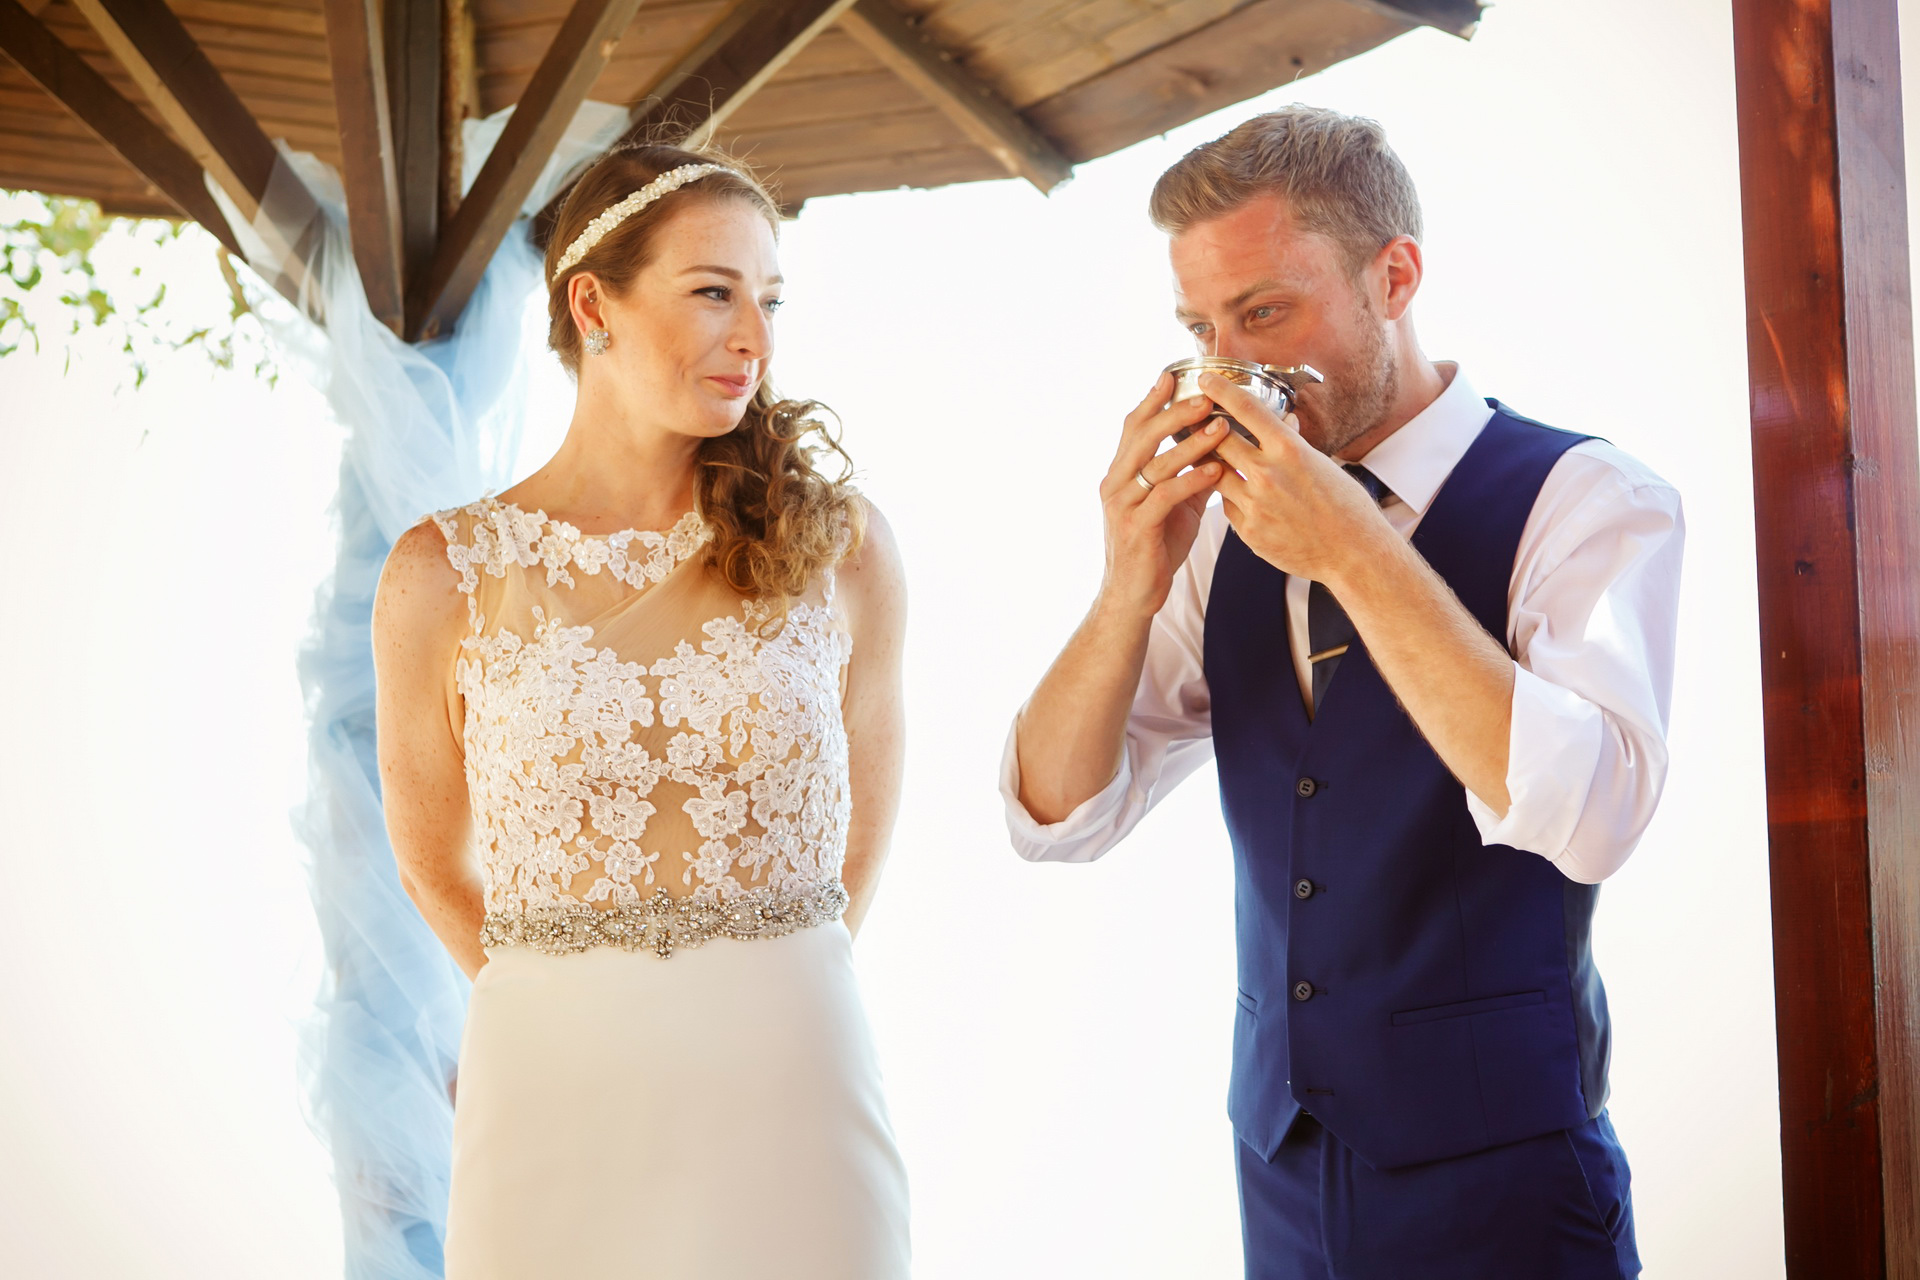 Boukari - Corfu - Ionian Islands, Greece Elopement Ceremony Image | The couple share a glass of wine